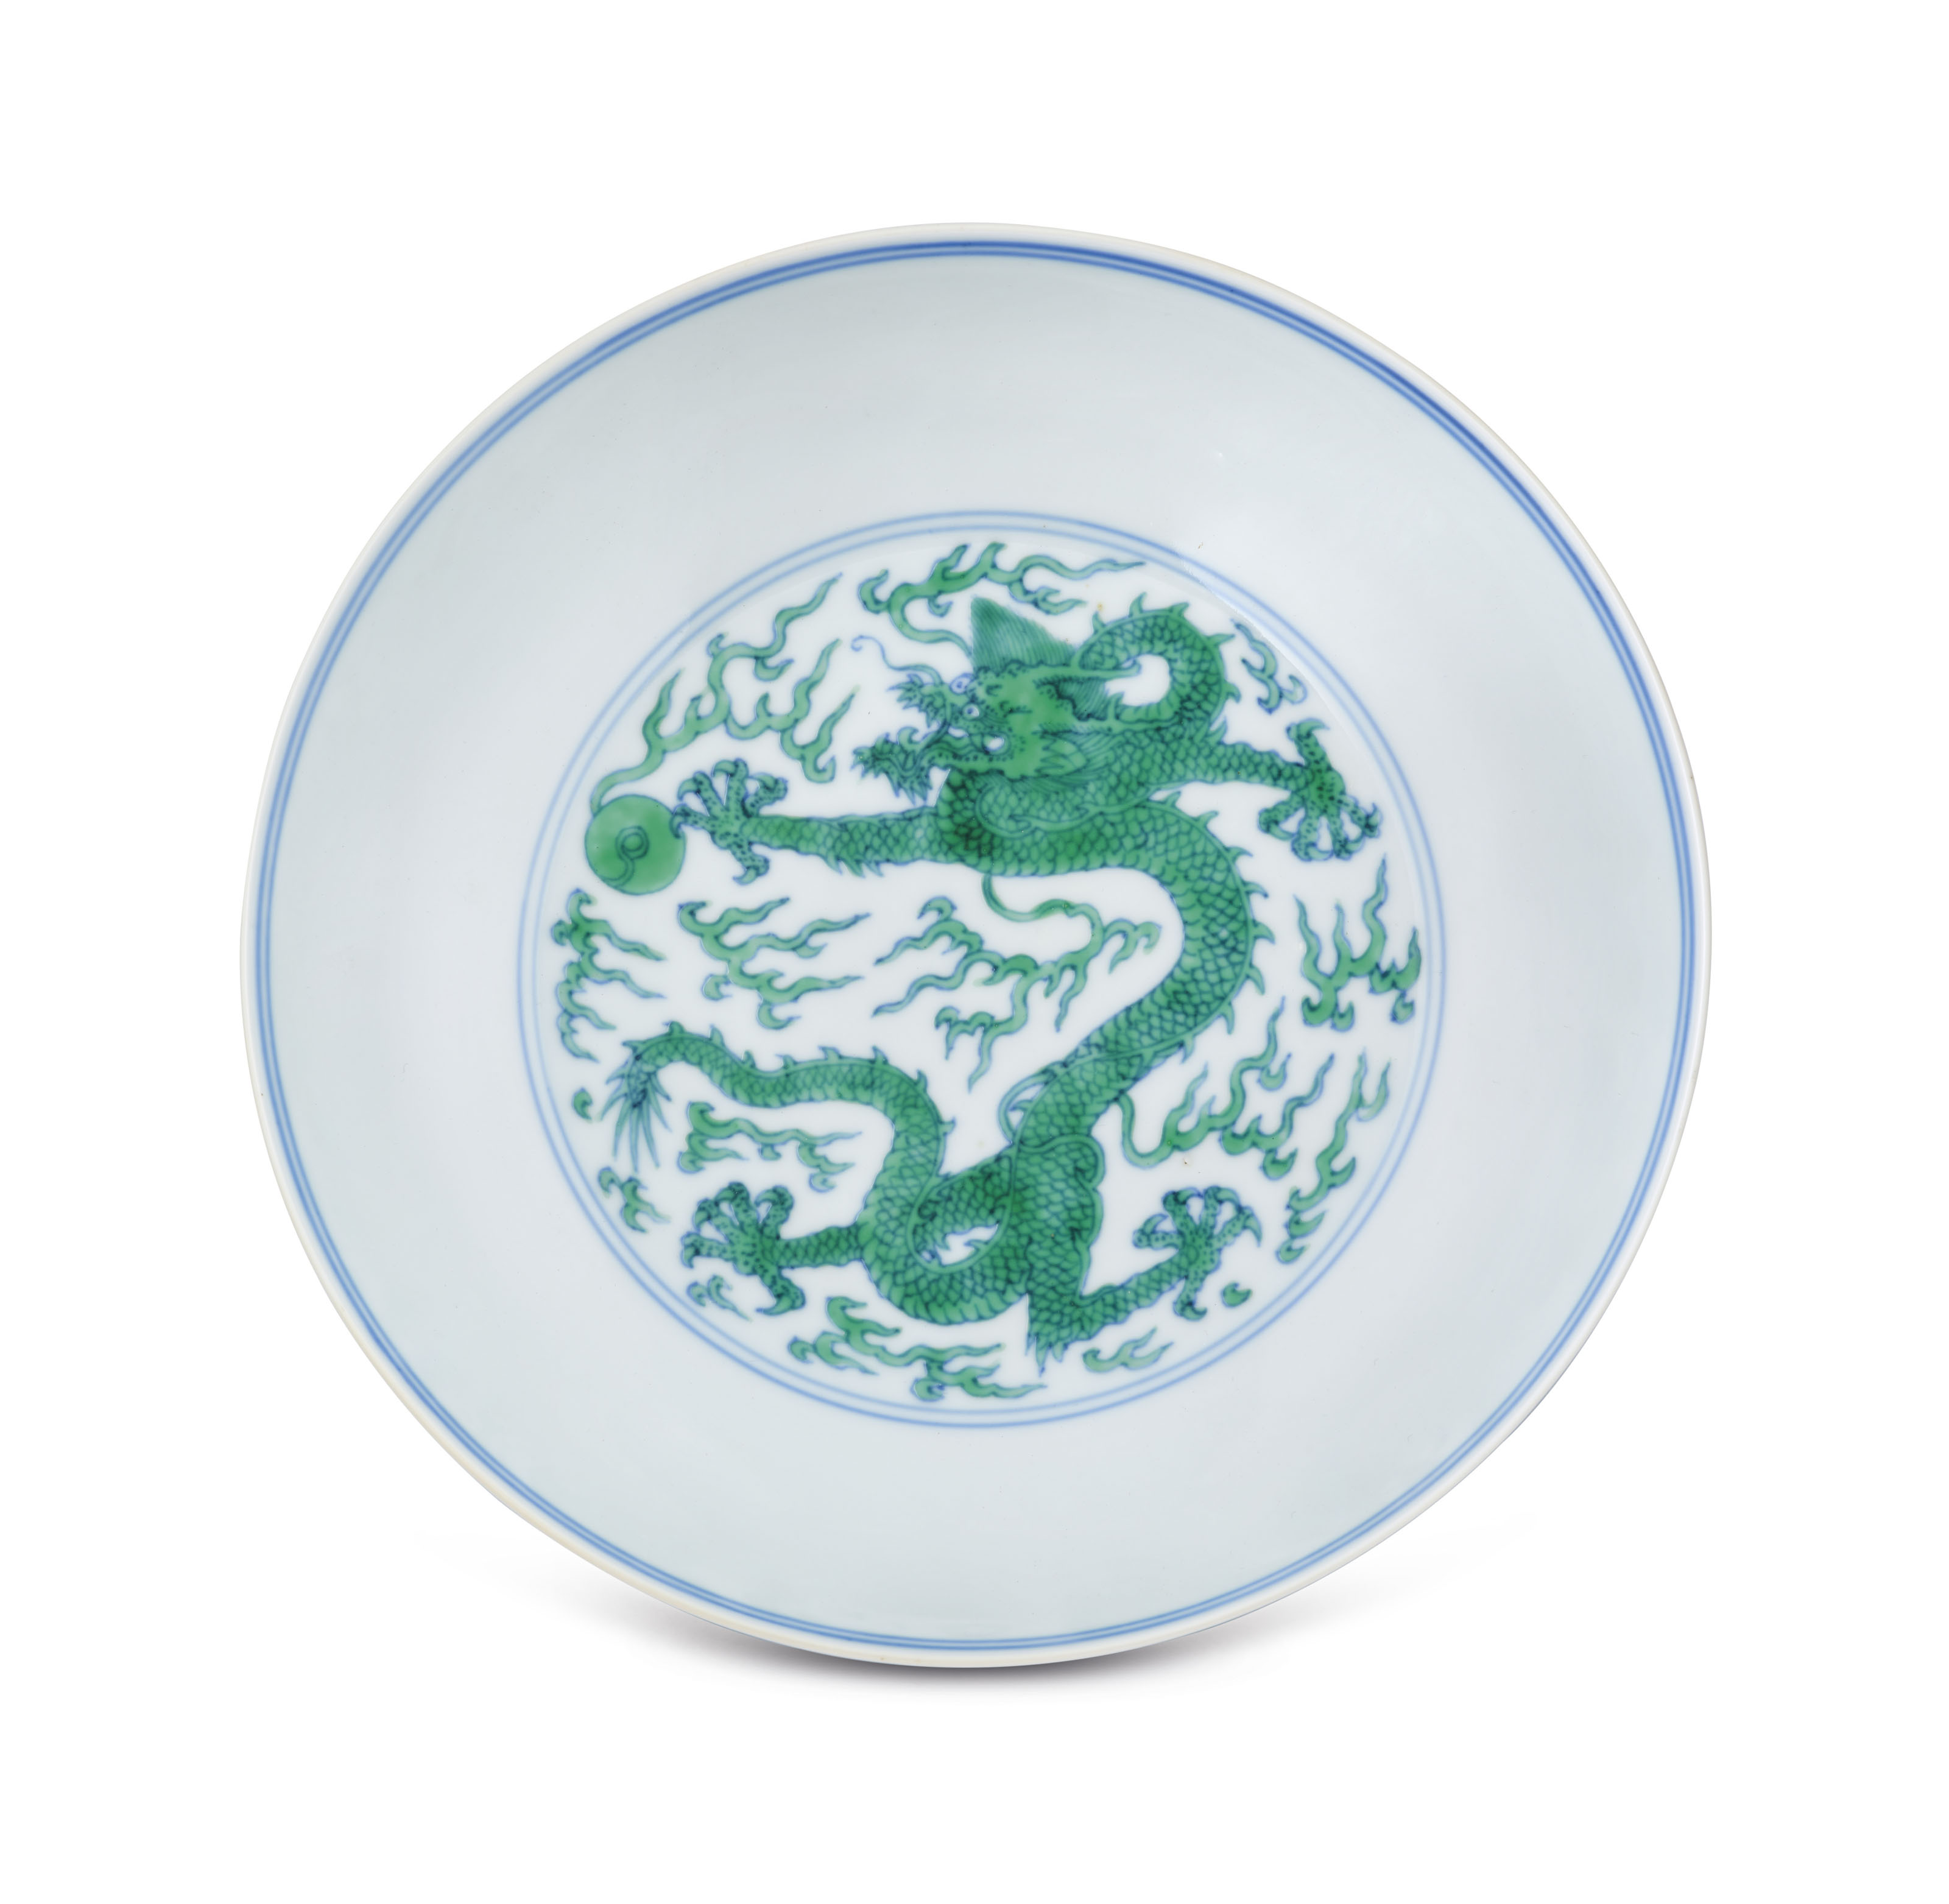 A FINE AND RARE UNDERGLAZE-BLUE AND GREEN-ENAMELLED 'DRAGON' DISH